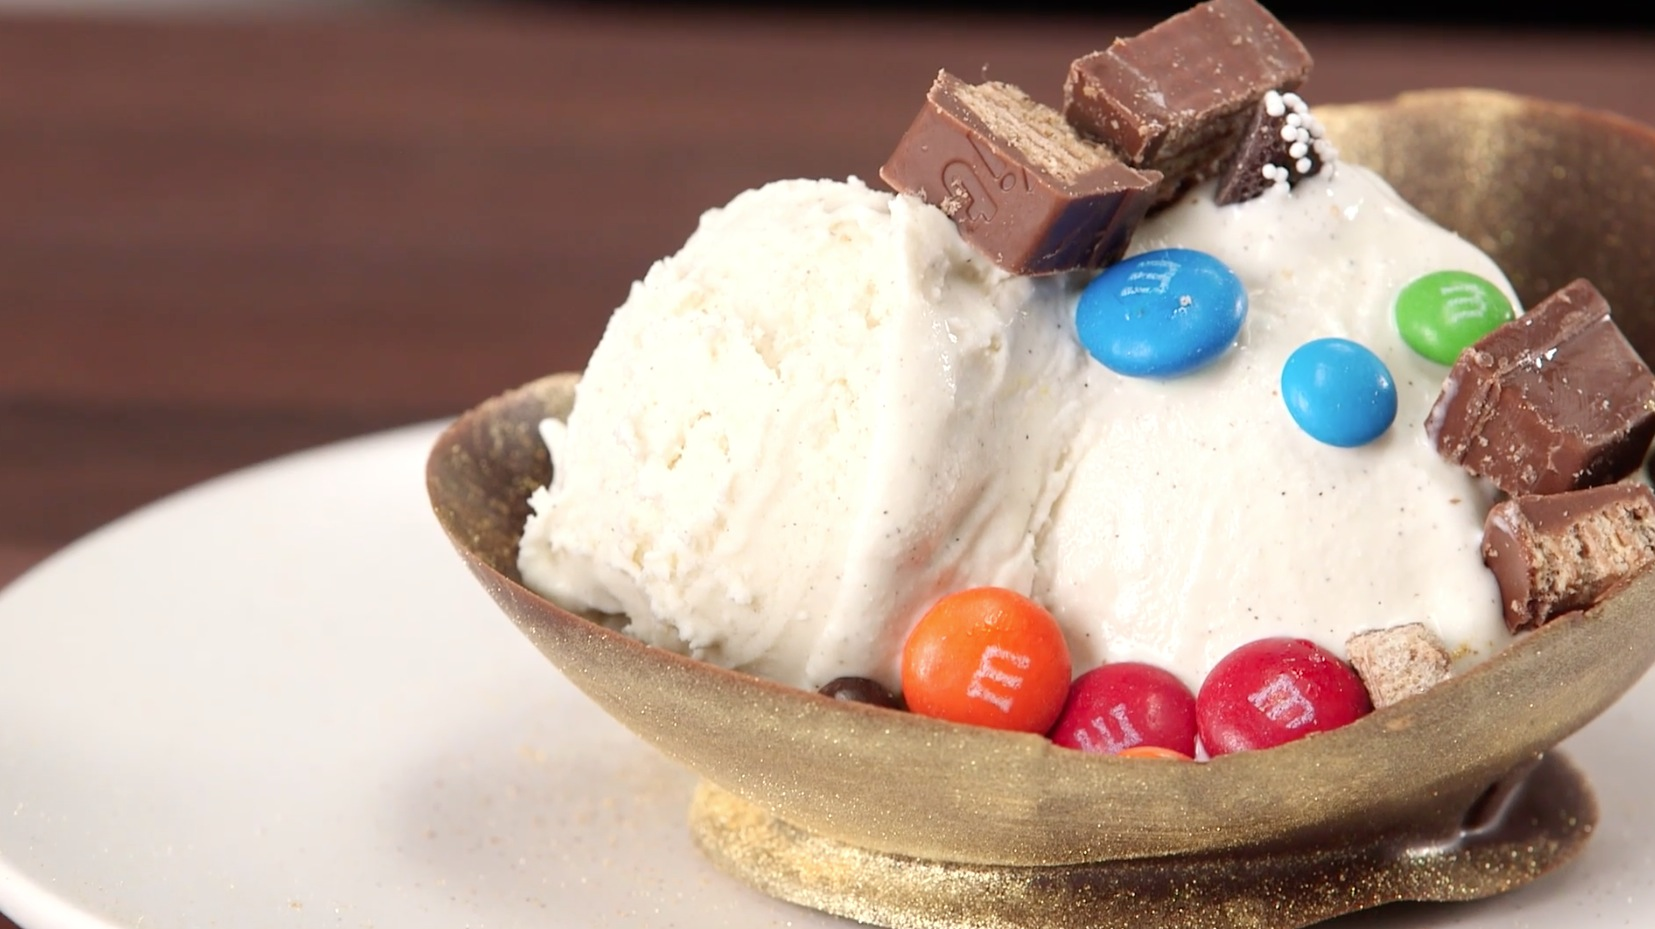 Making Golden Chocolate Ice Cream Bowls is Easy With This Mad Genius Tip